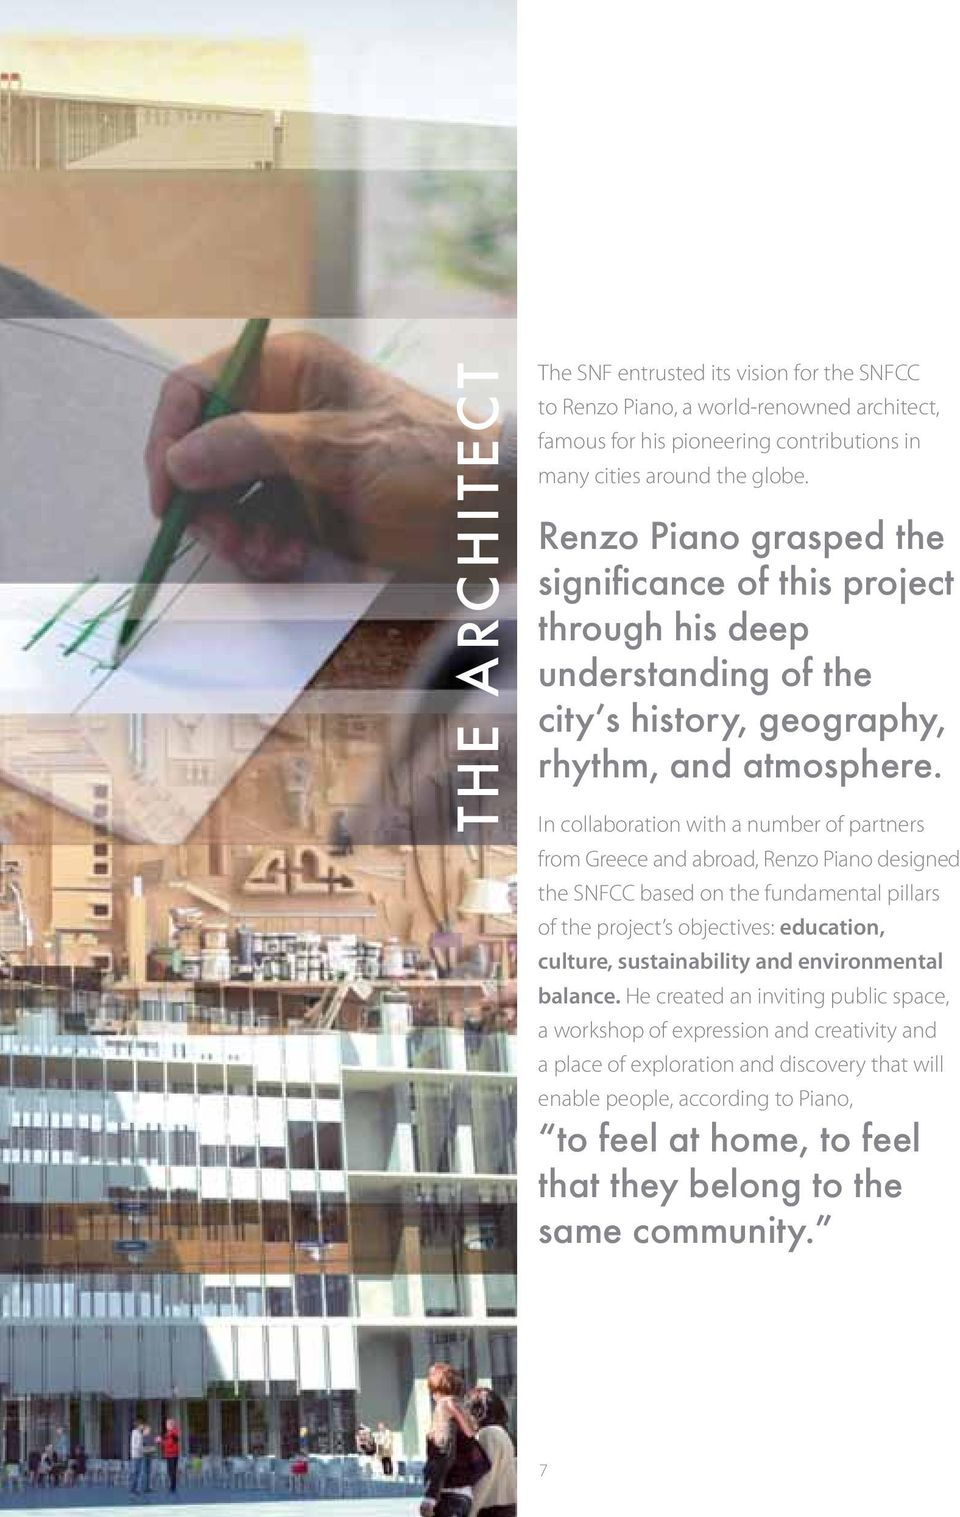 In collaboration with a number of partners from Greece and abroad, Renzo Piano designed the SNFCC based on the fundamental pillars of the project s objectives: education, culture,